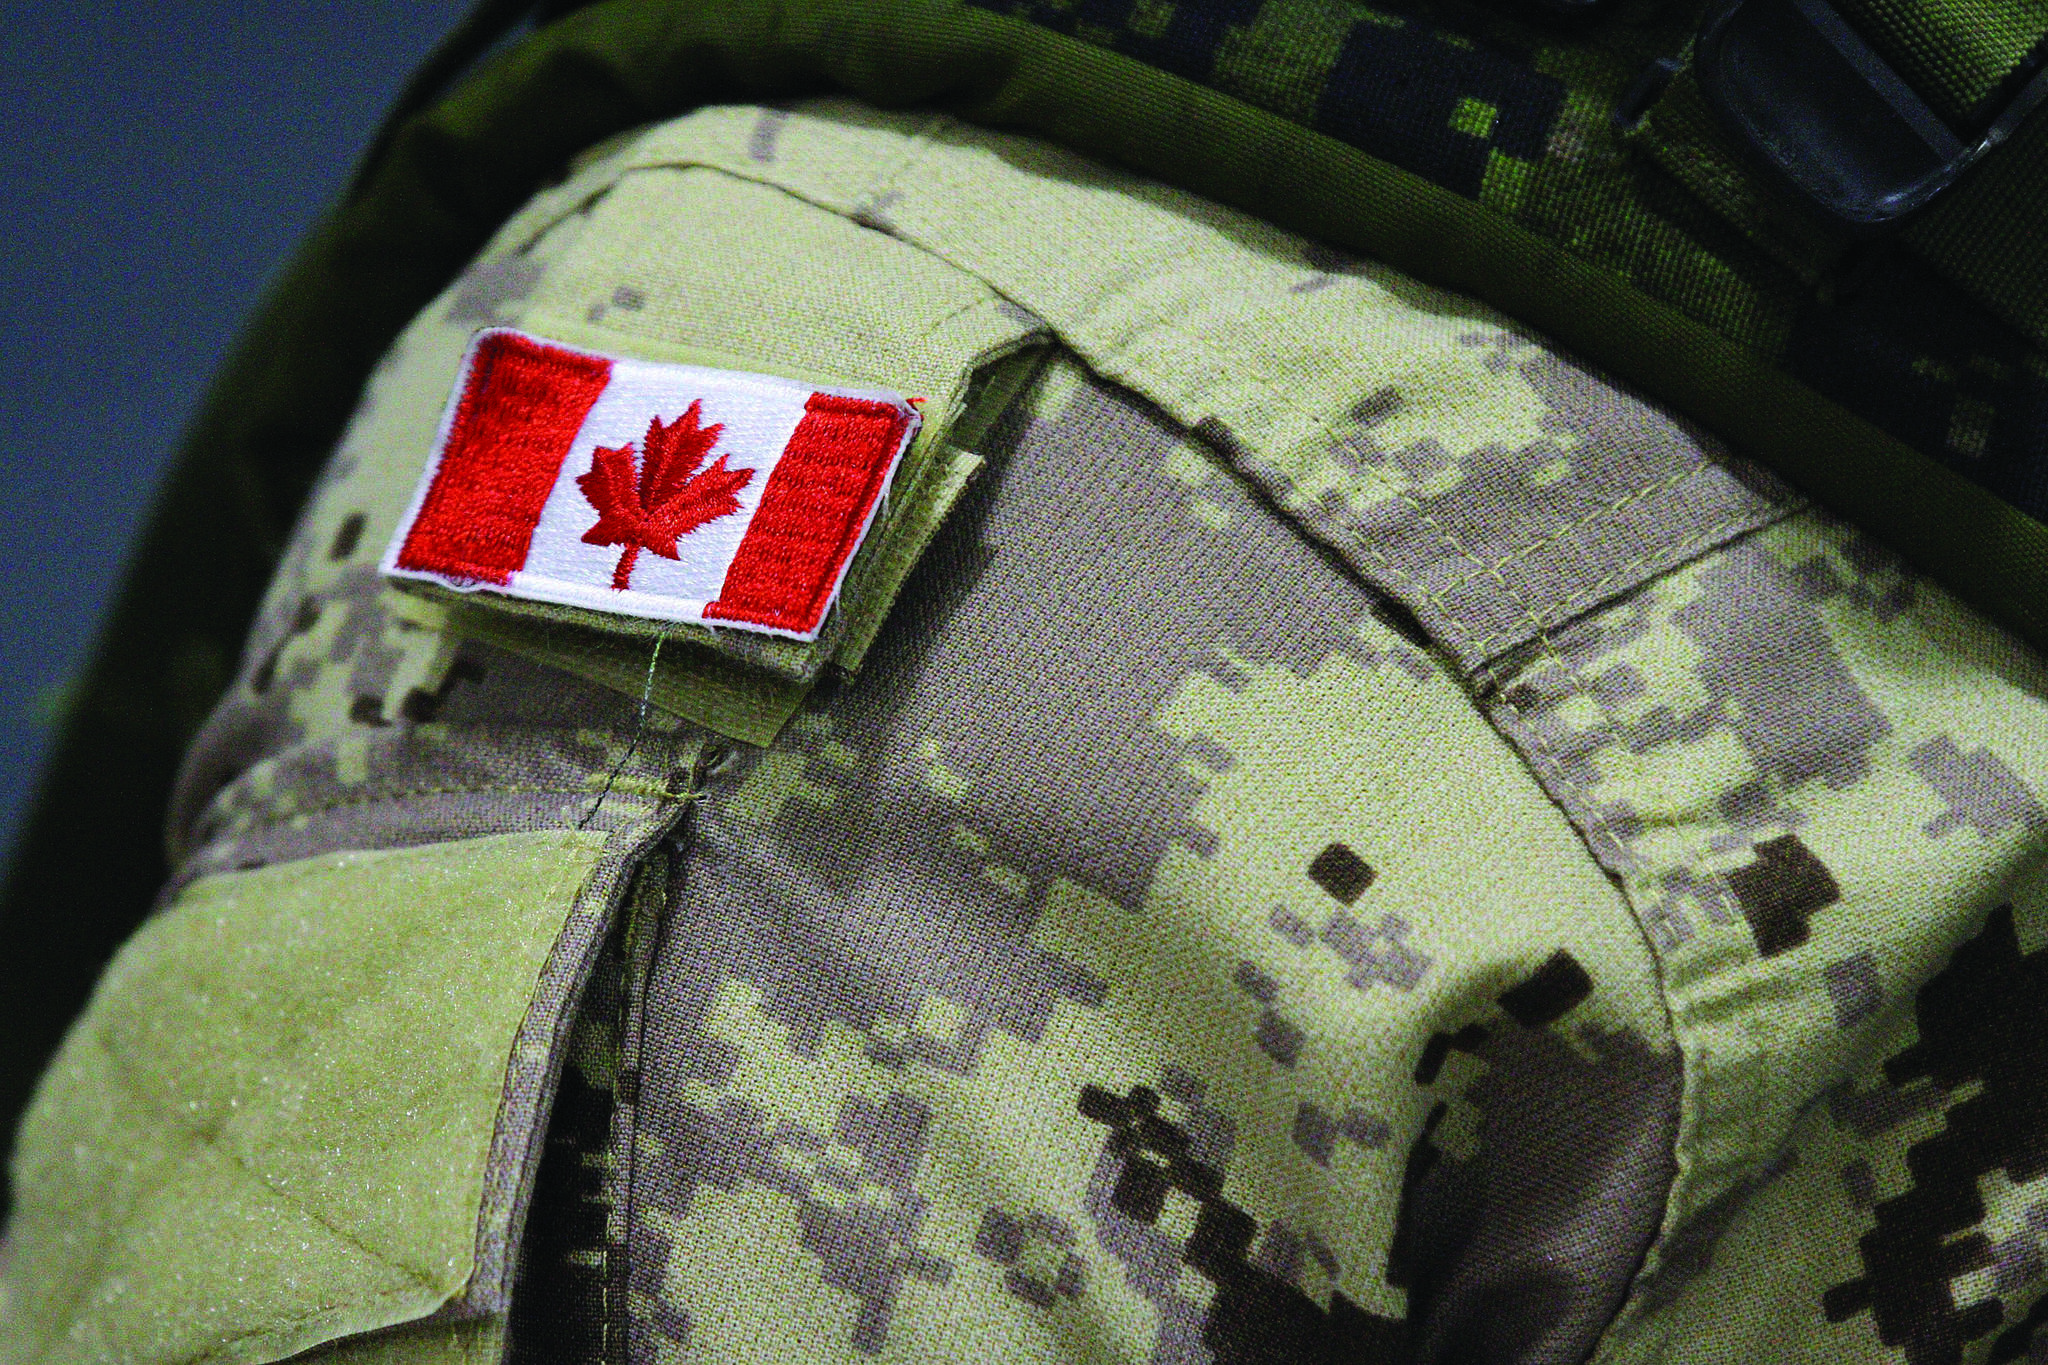 FILE - A Canadian flag is shown on the uniform of a member of the military in Trenton, Ont., on Thursday, Oct. 16, 2014. (THE CANADIAN PRESS/Lars Hagberg)